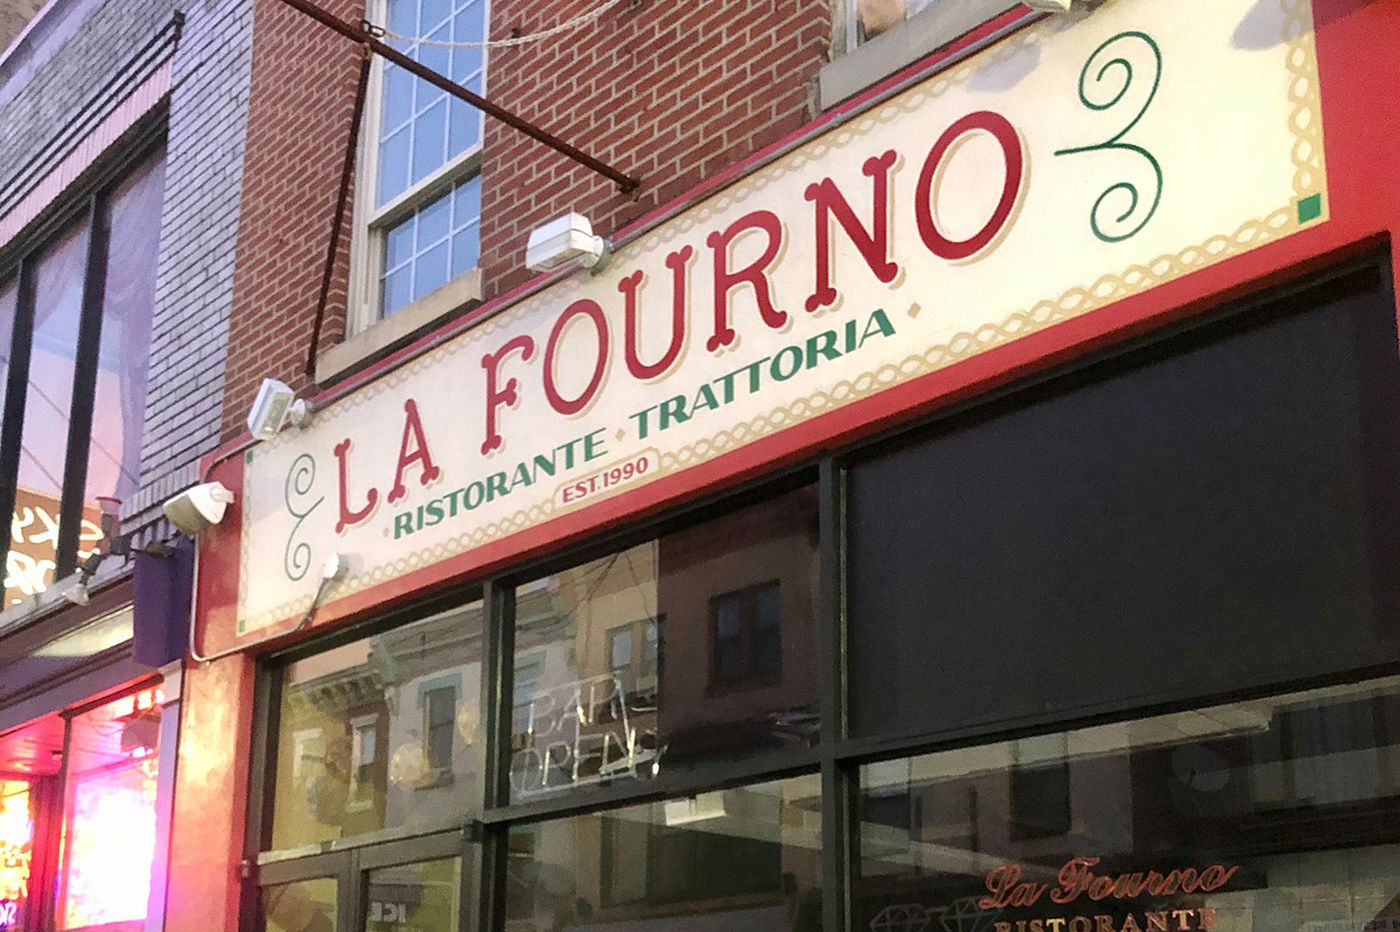 La Fourno has closed, creating another restaurant vacancy on South Street